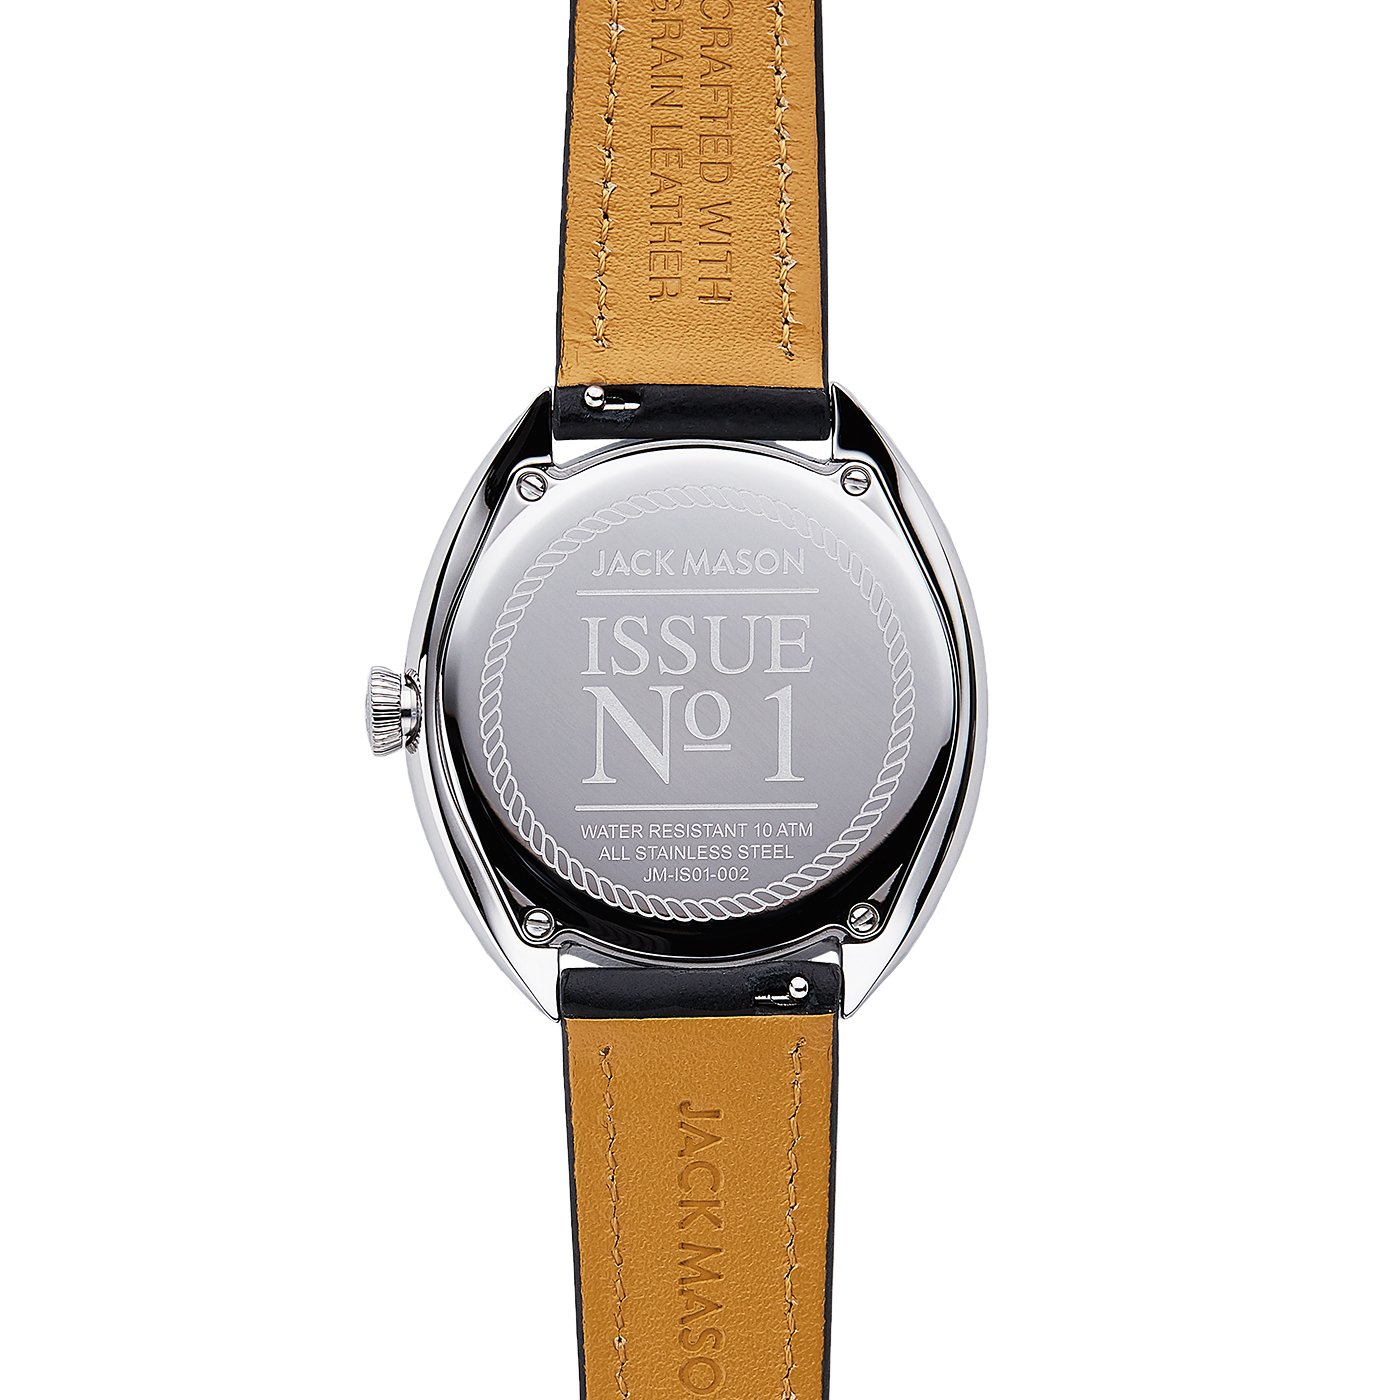 Jack Mason Women's Watch Issue No 1 SS Sub Second MOP Dial Black Leather Strap by Jack Mason (Image #3)